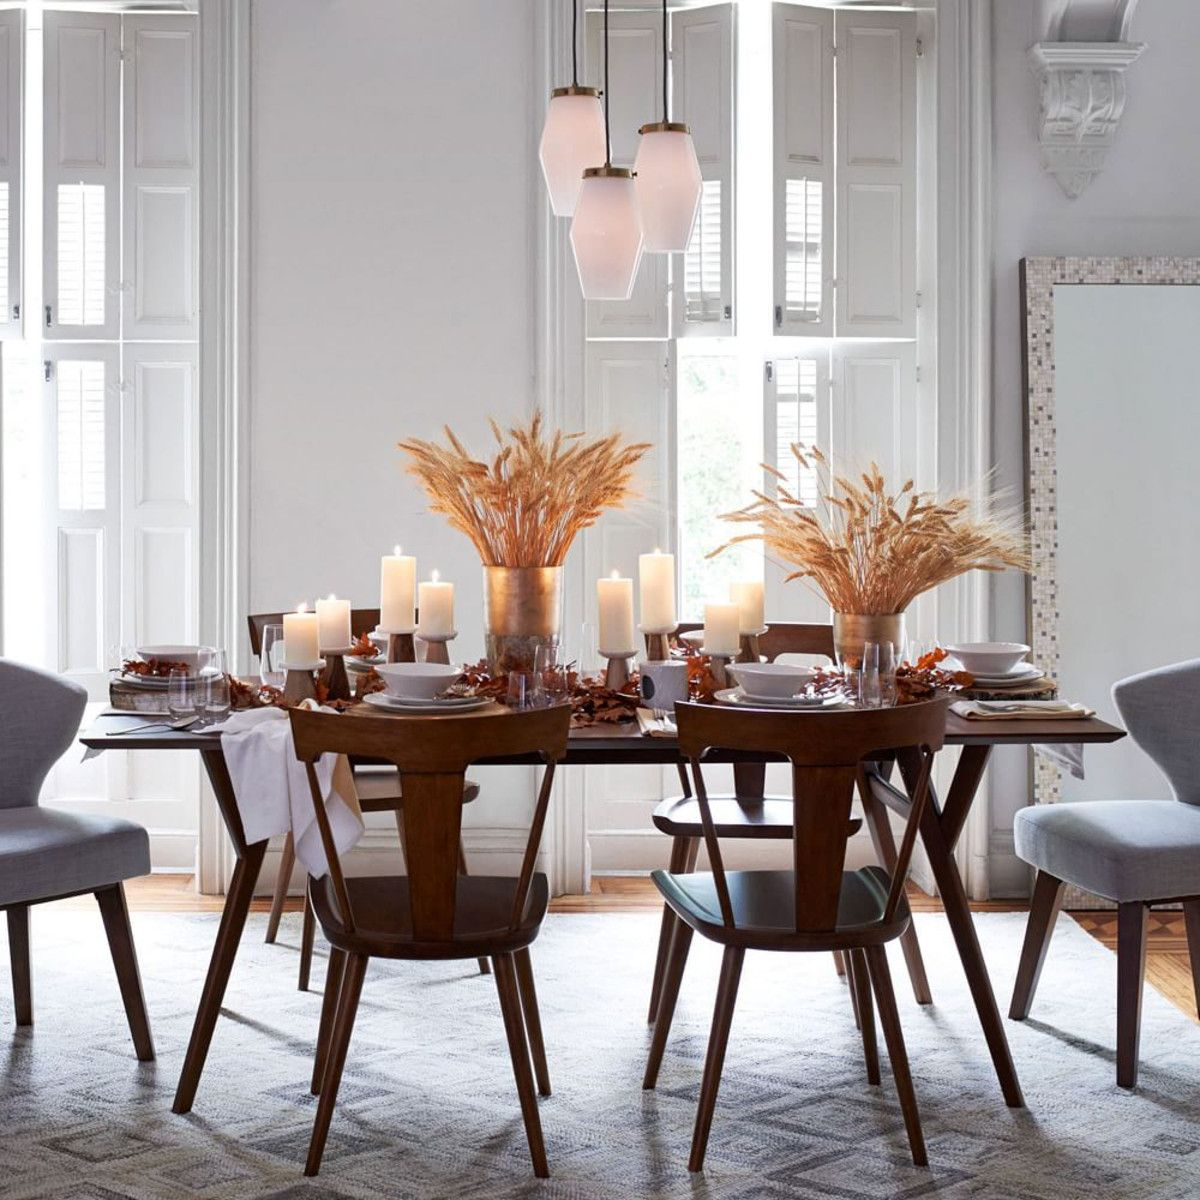 The Mid Century Modern Dining Chairs Your Home Must Have Cool Mid Century Modern Dining Rooms Decorating Design